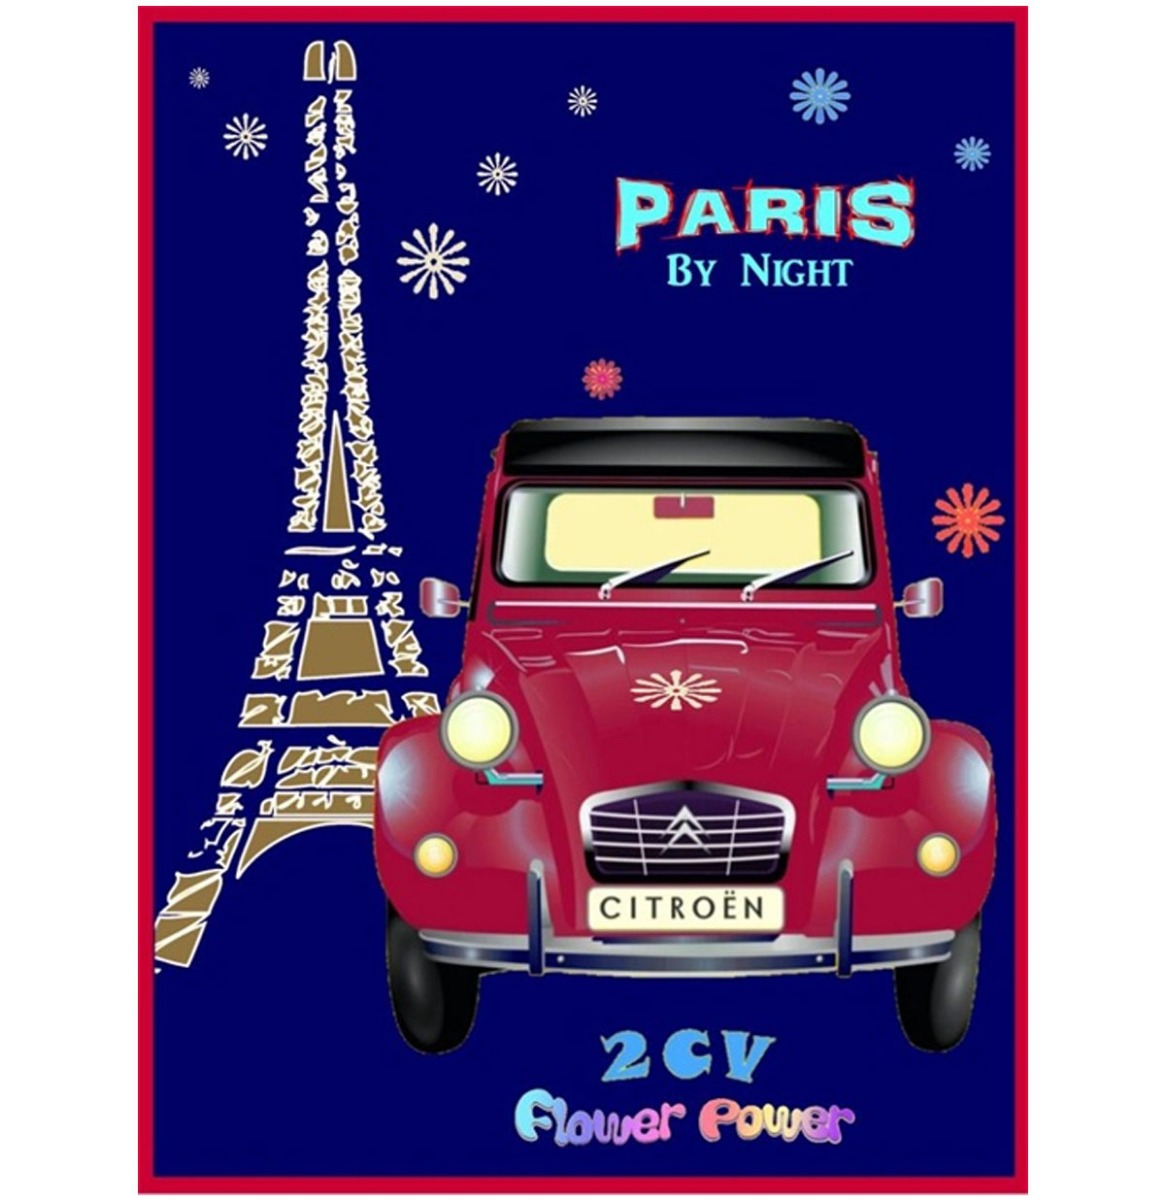 Citroen 2 CV Paris By Night Metalen Bord - 20 x 30 cm